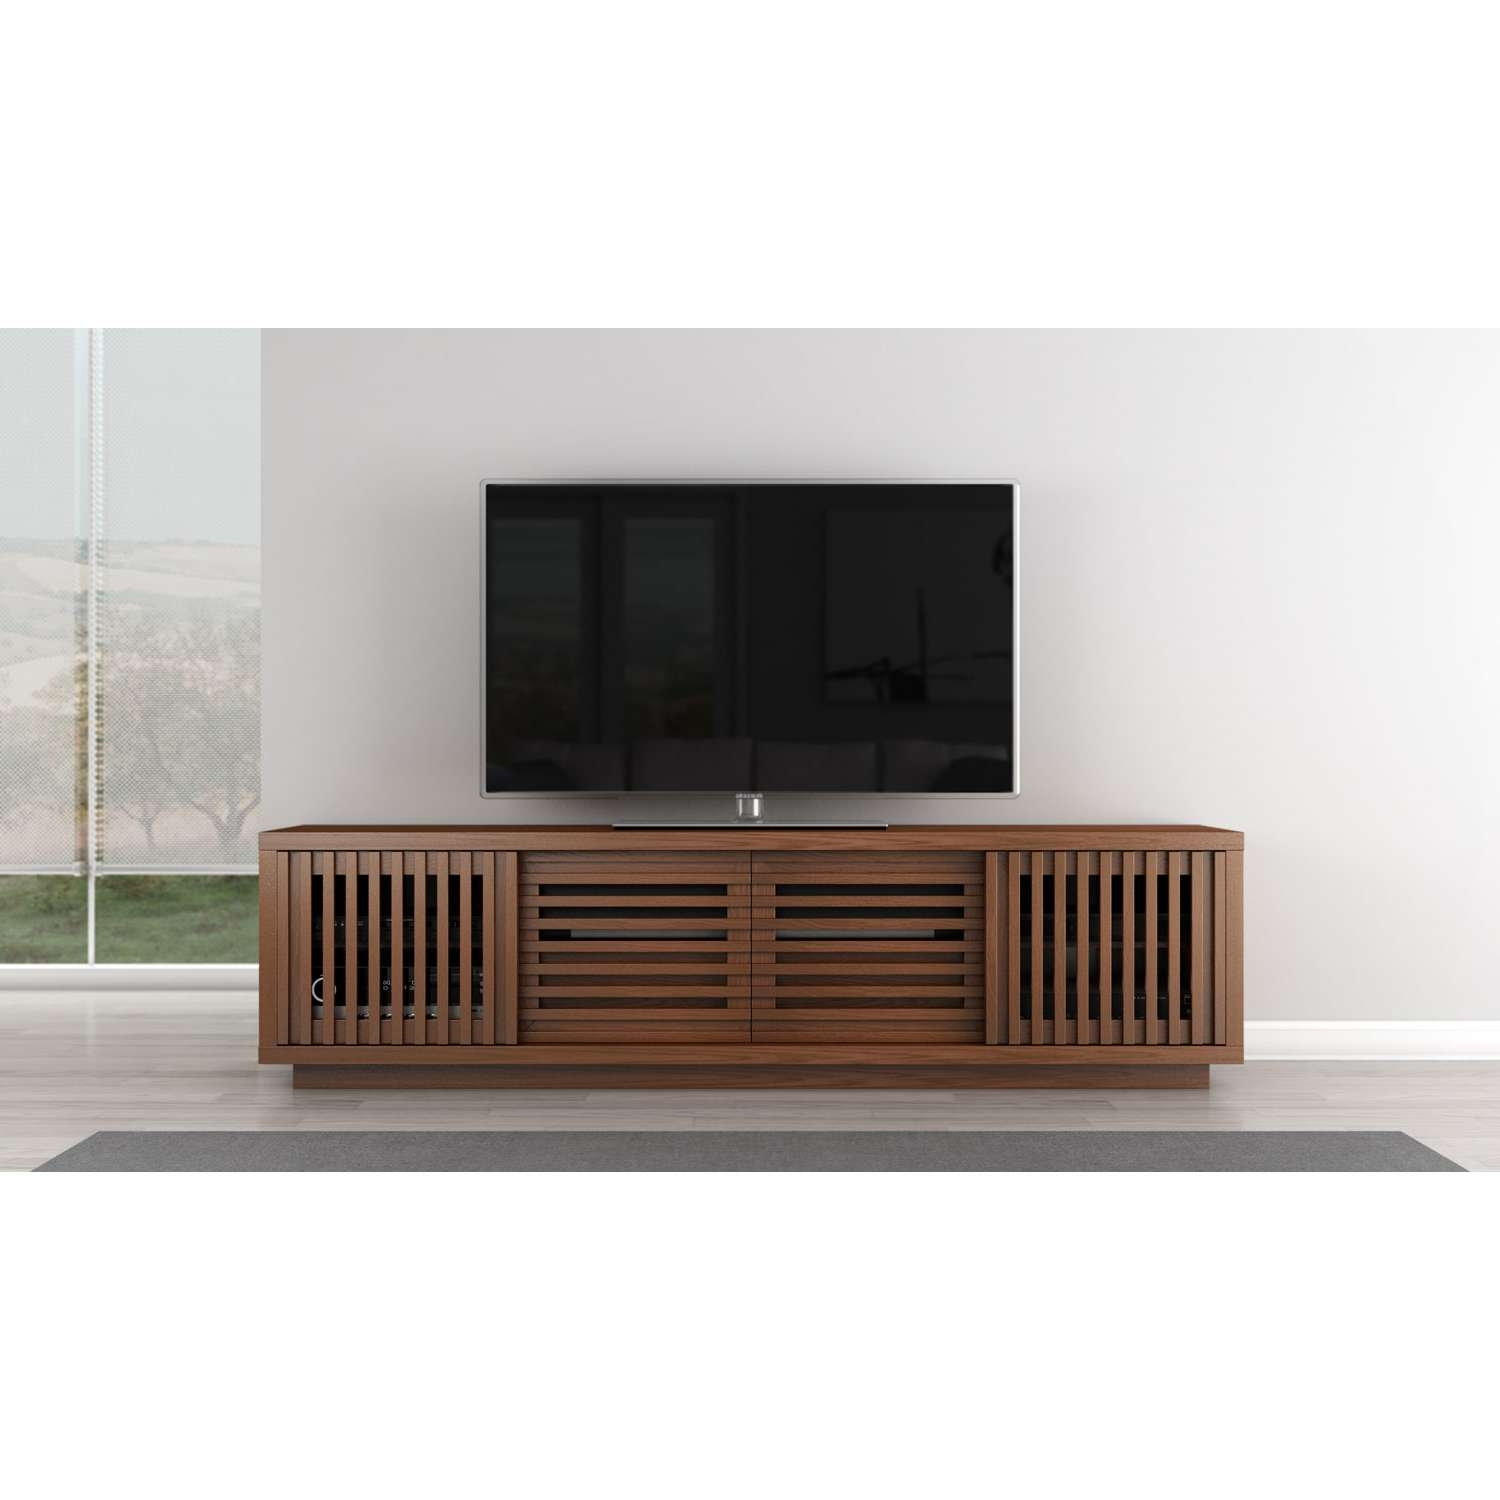 Signature Contemporary Rustic 82 Inch Warm Honey Finished White Intended For Contemporary Oak Tv Stands (View 11 of 15)